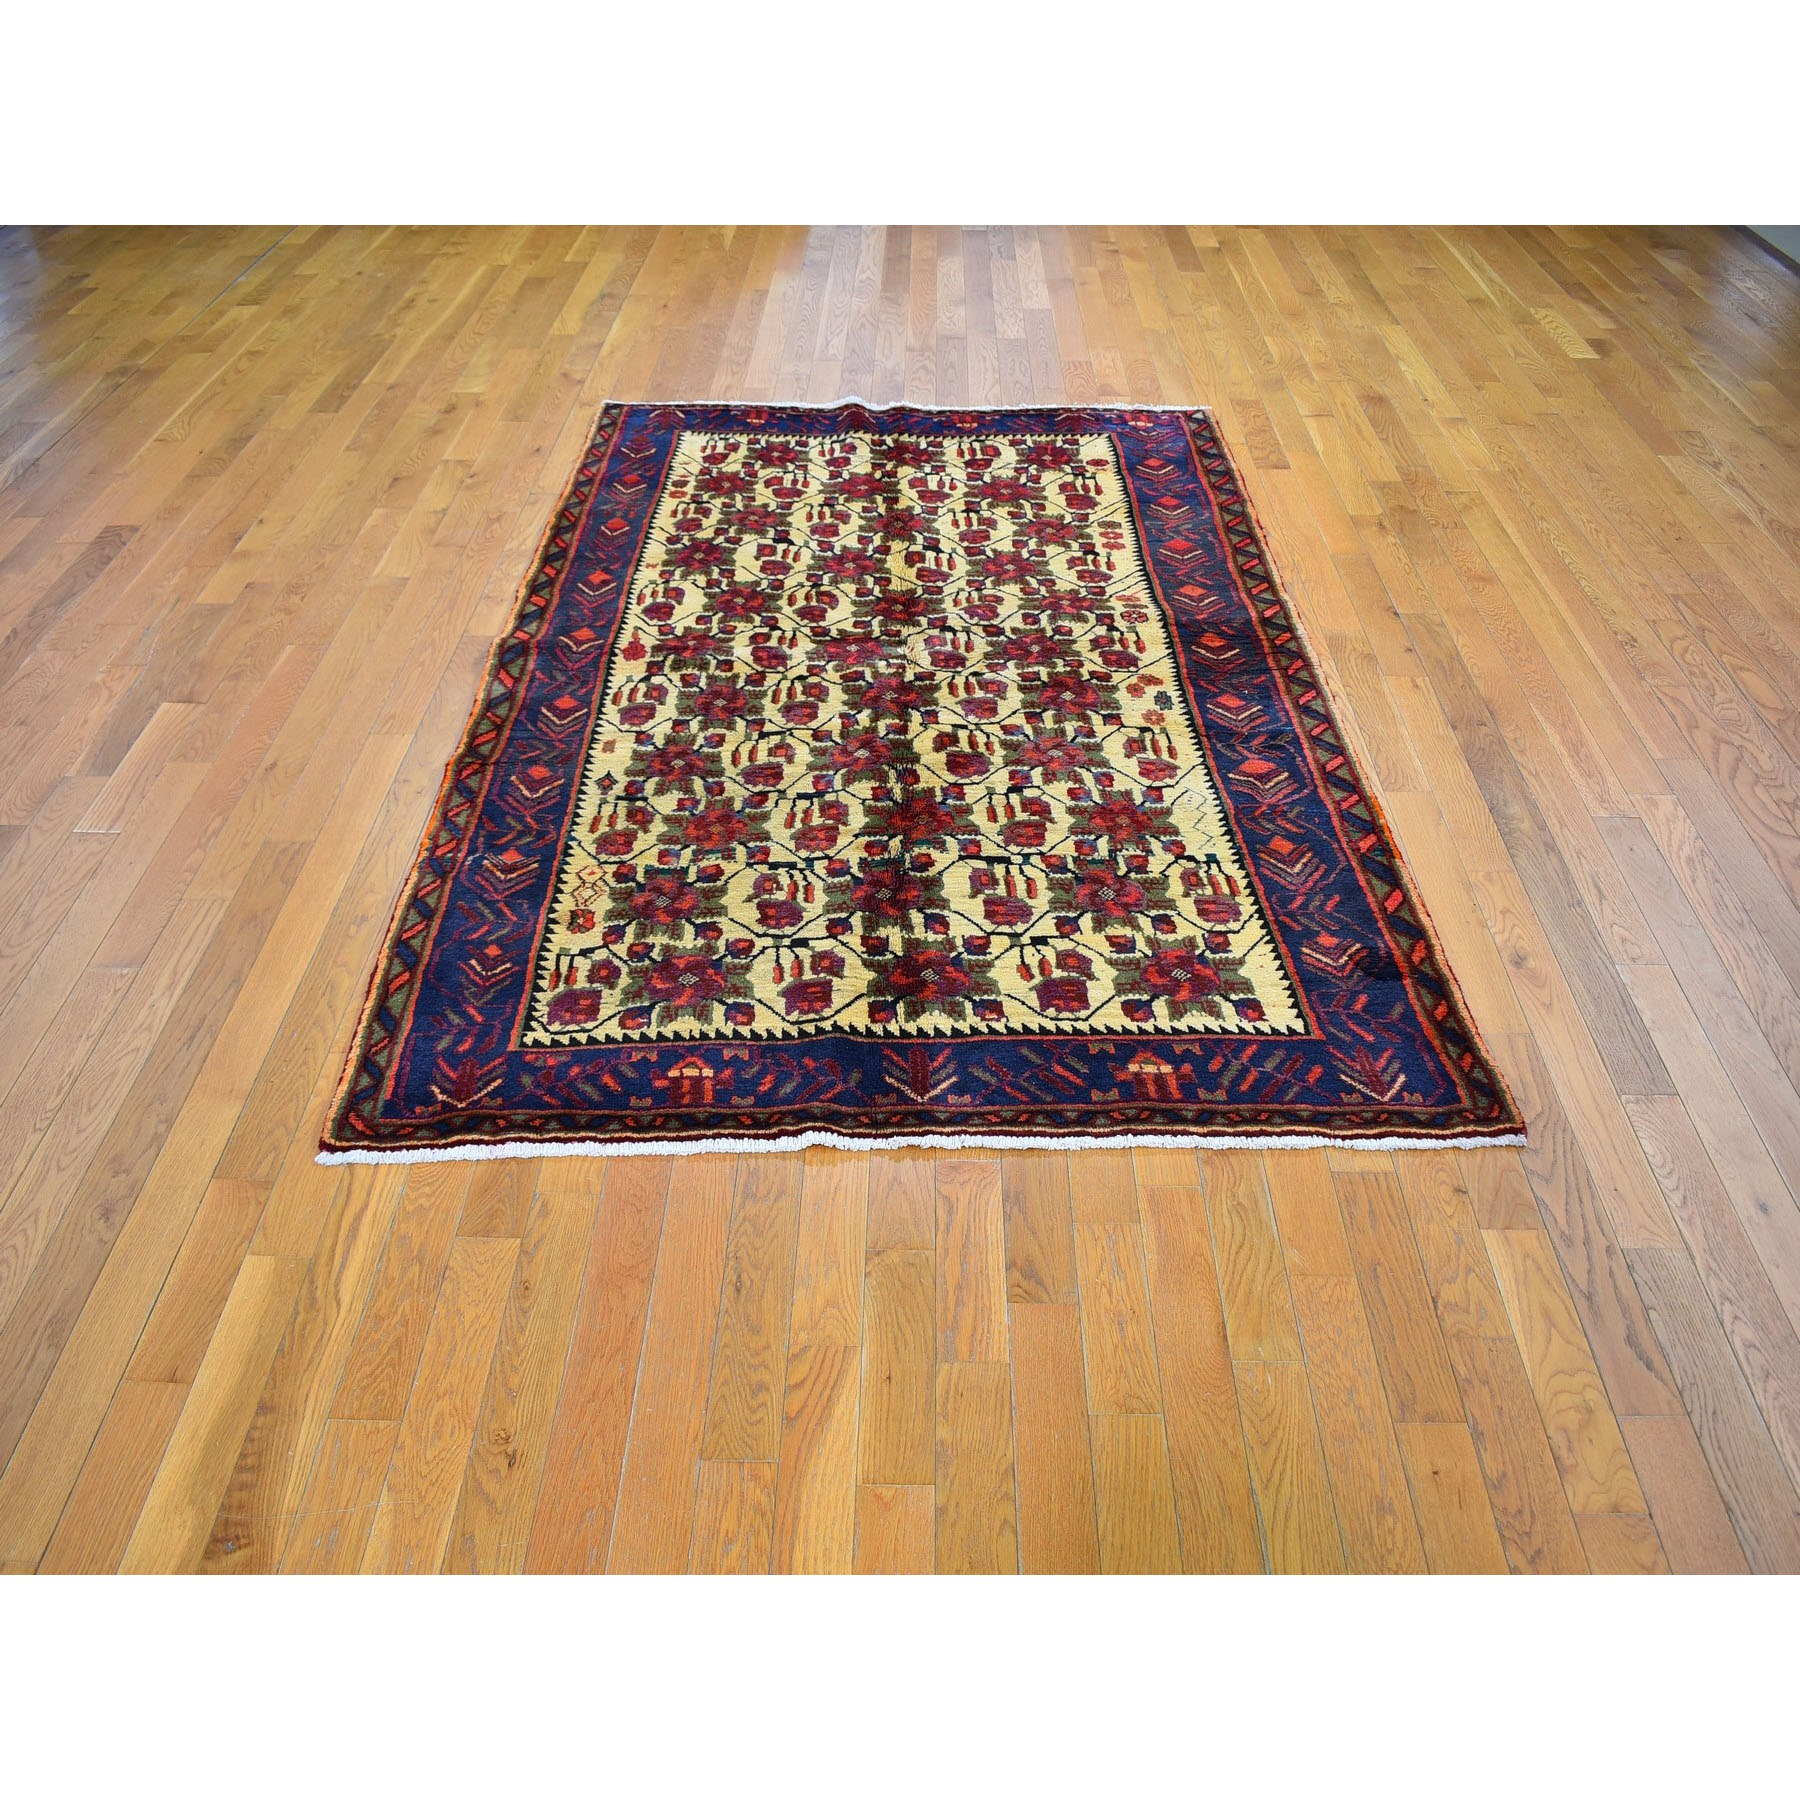 "5'1""x8' Vintage Persian Karabakh Good Condition Ivory Flower Repetitive Design Hand Knotted Oriental Rug"